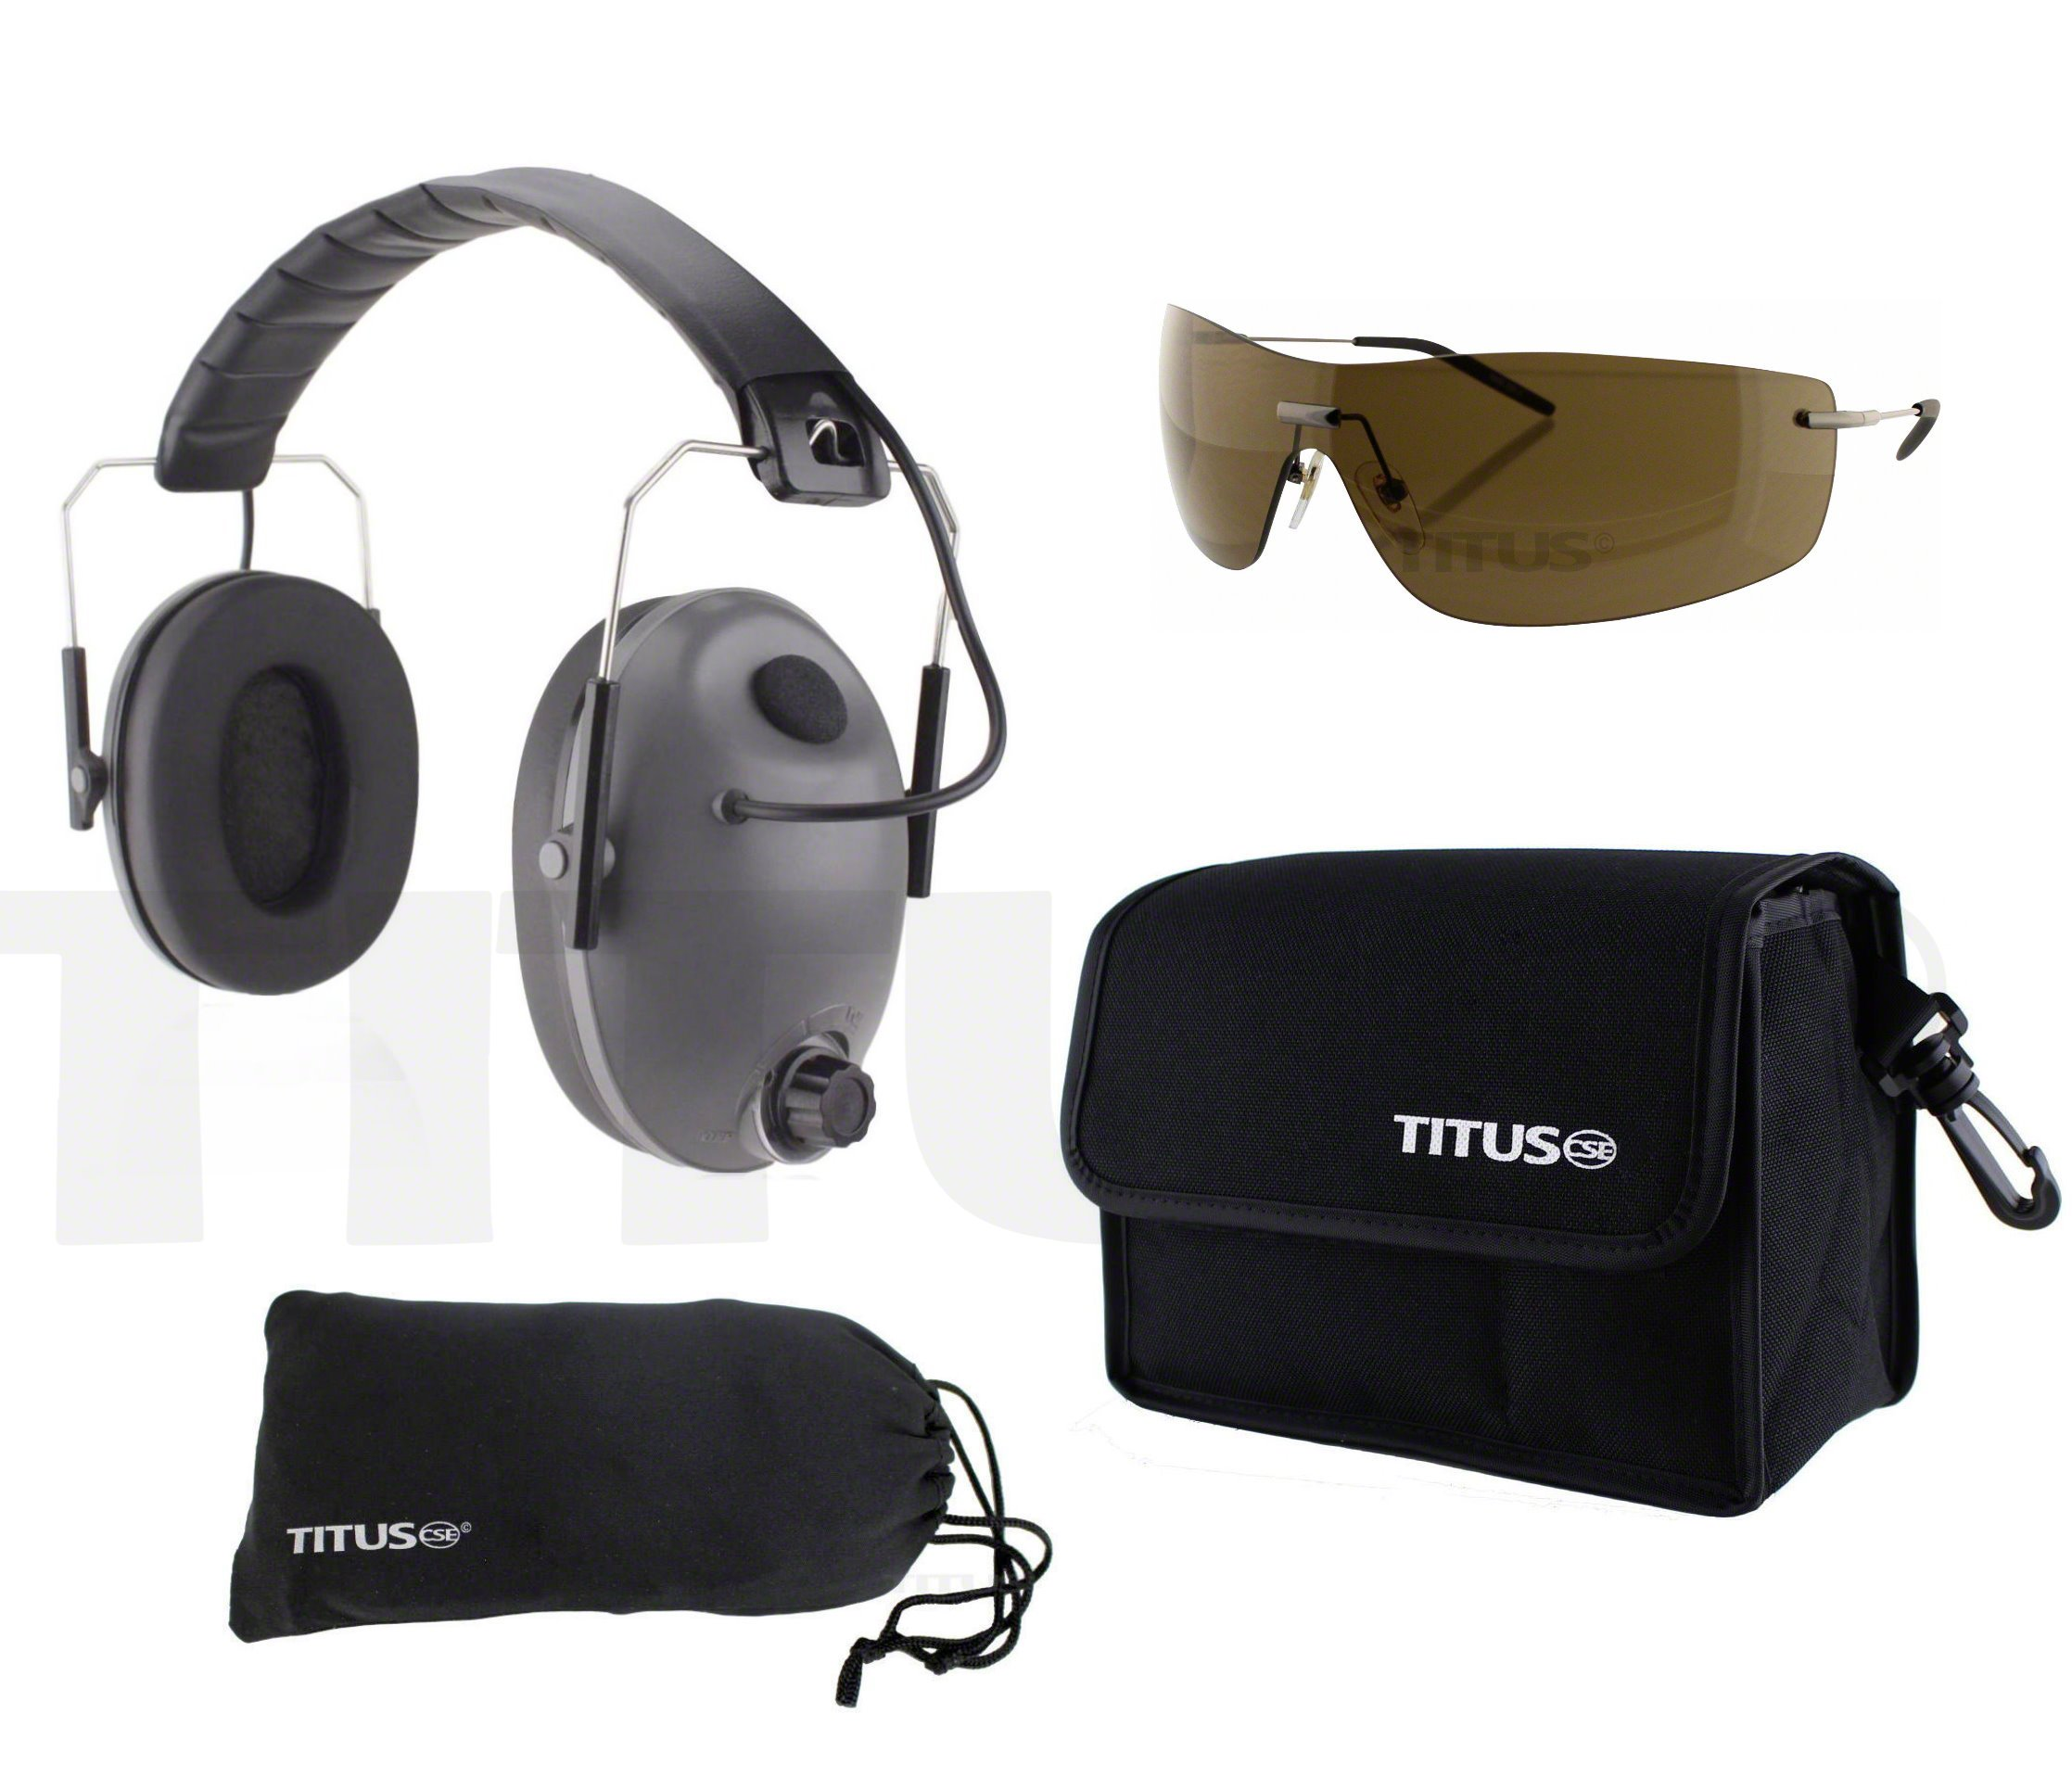 TITUS Electronic Noise-Cancelling Earmuffs and Safety Glasses Combos (Grey Electronic - Slim, G16 Bronze w/Euro-style Metal Frame)